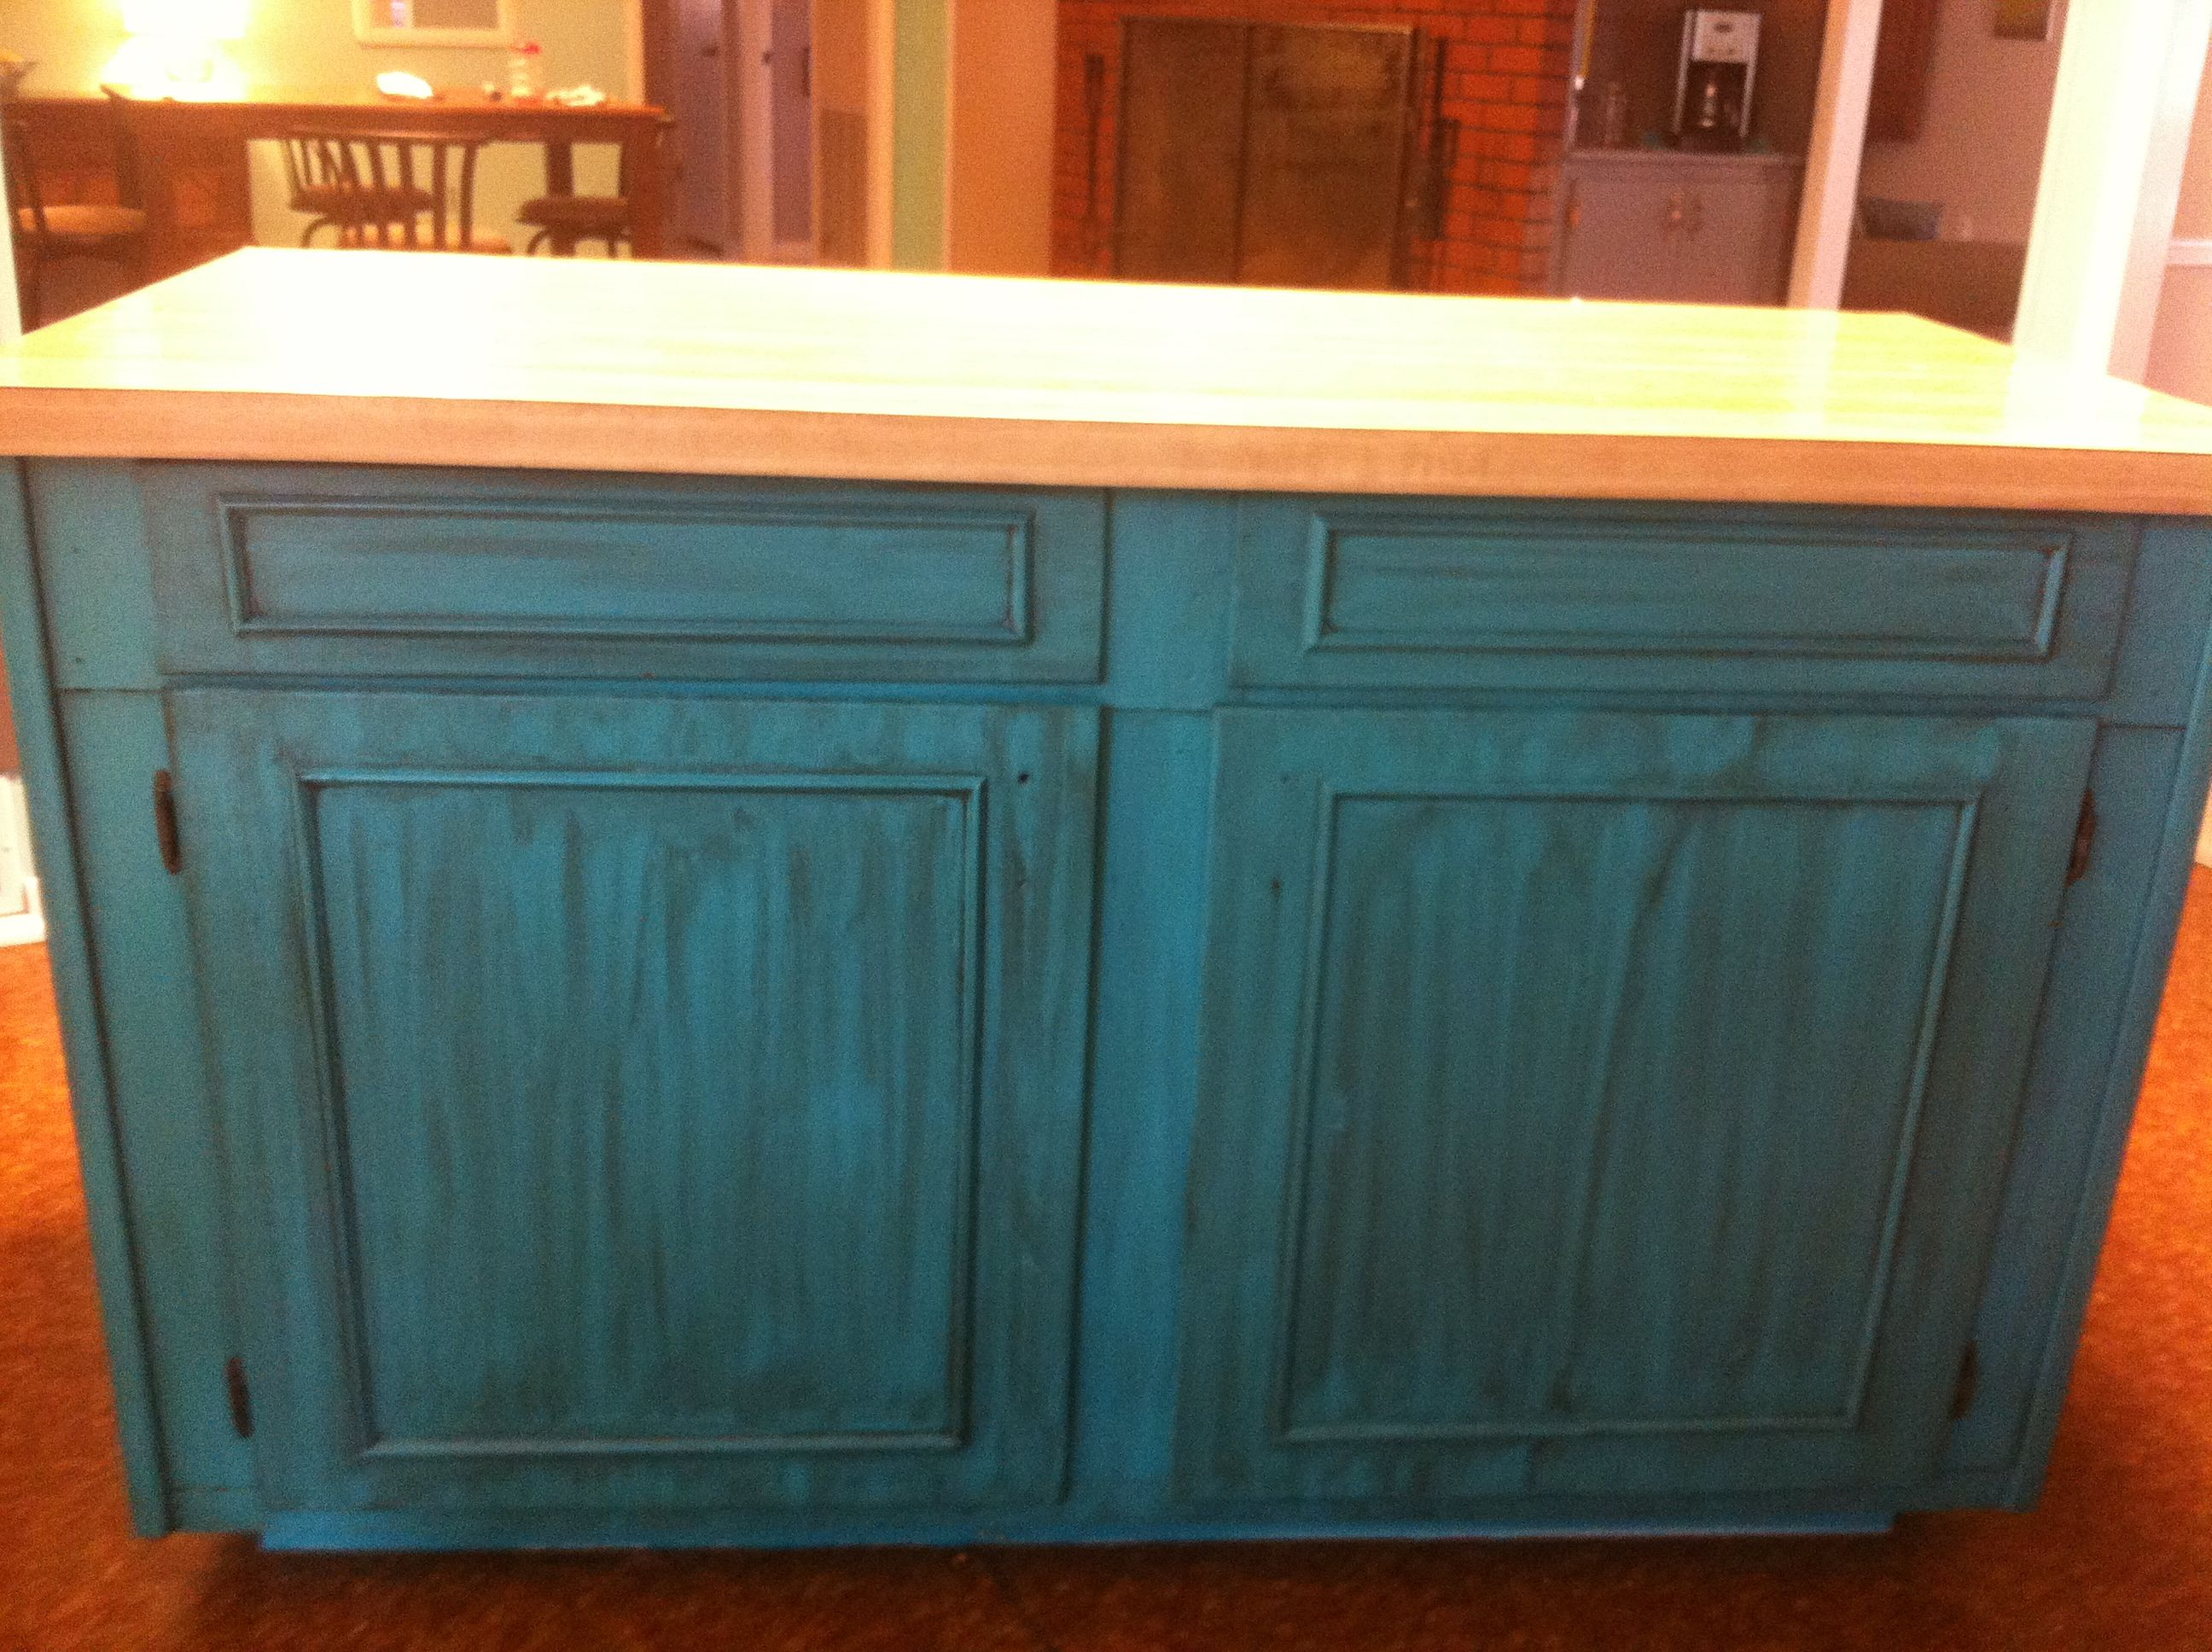 Teal Turquoise Island Kitchen Distressed